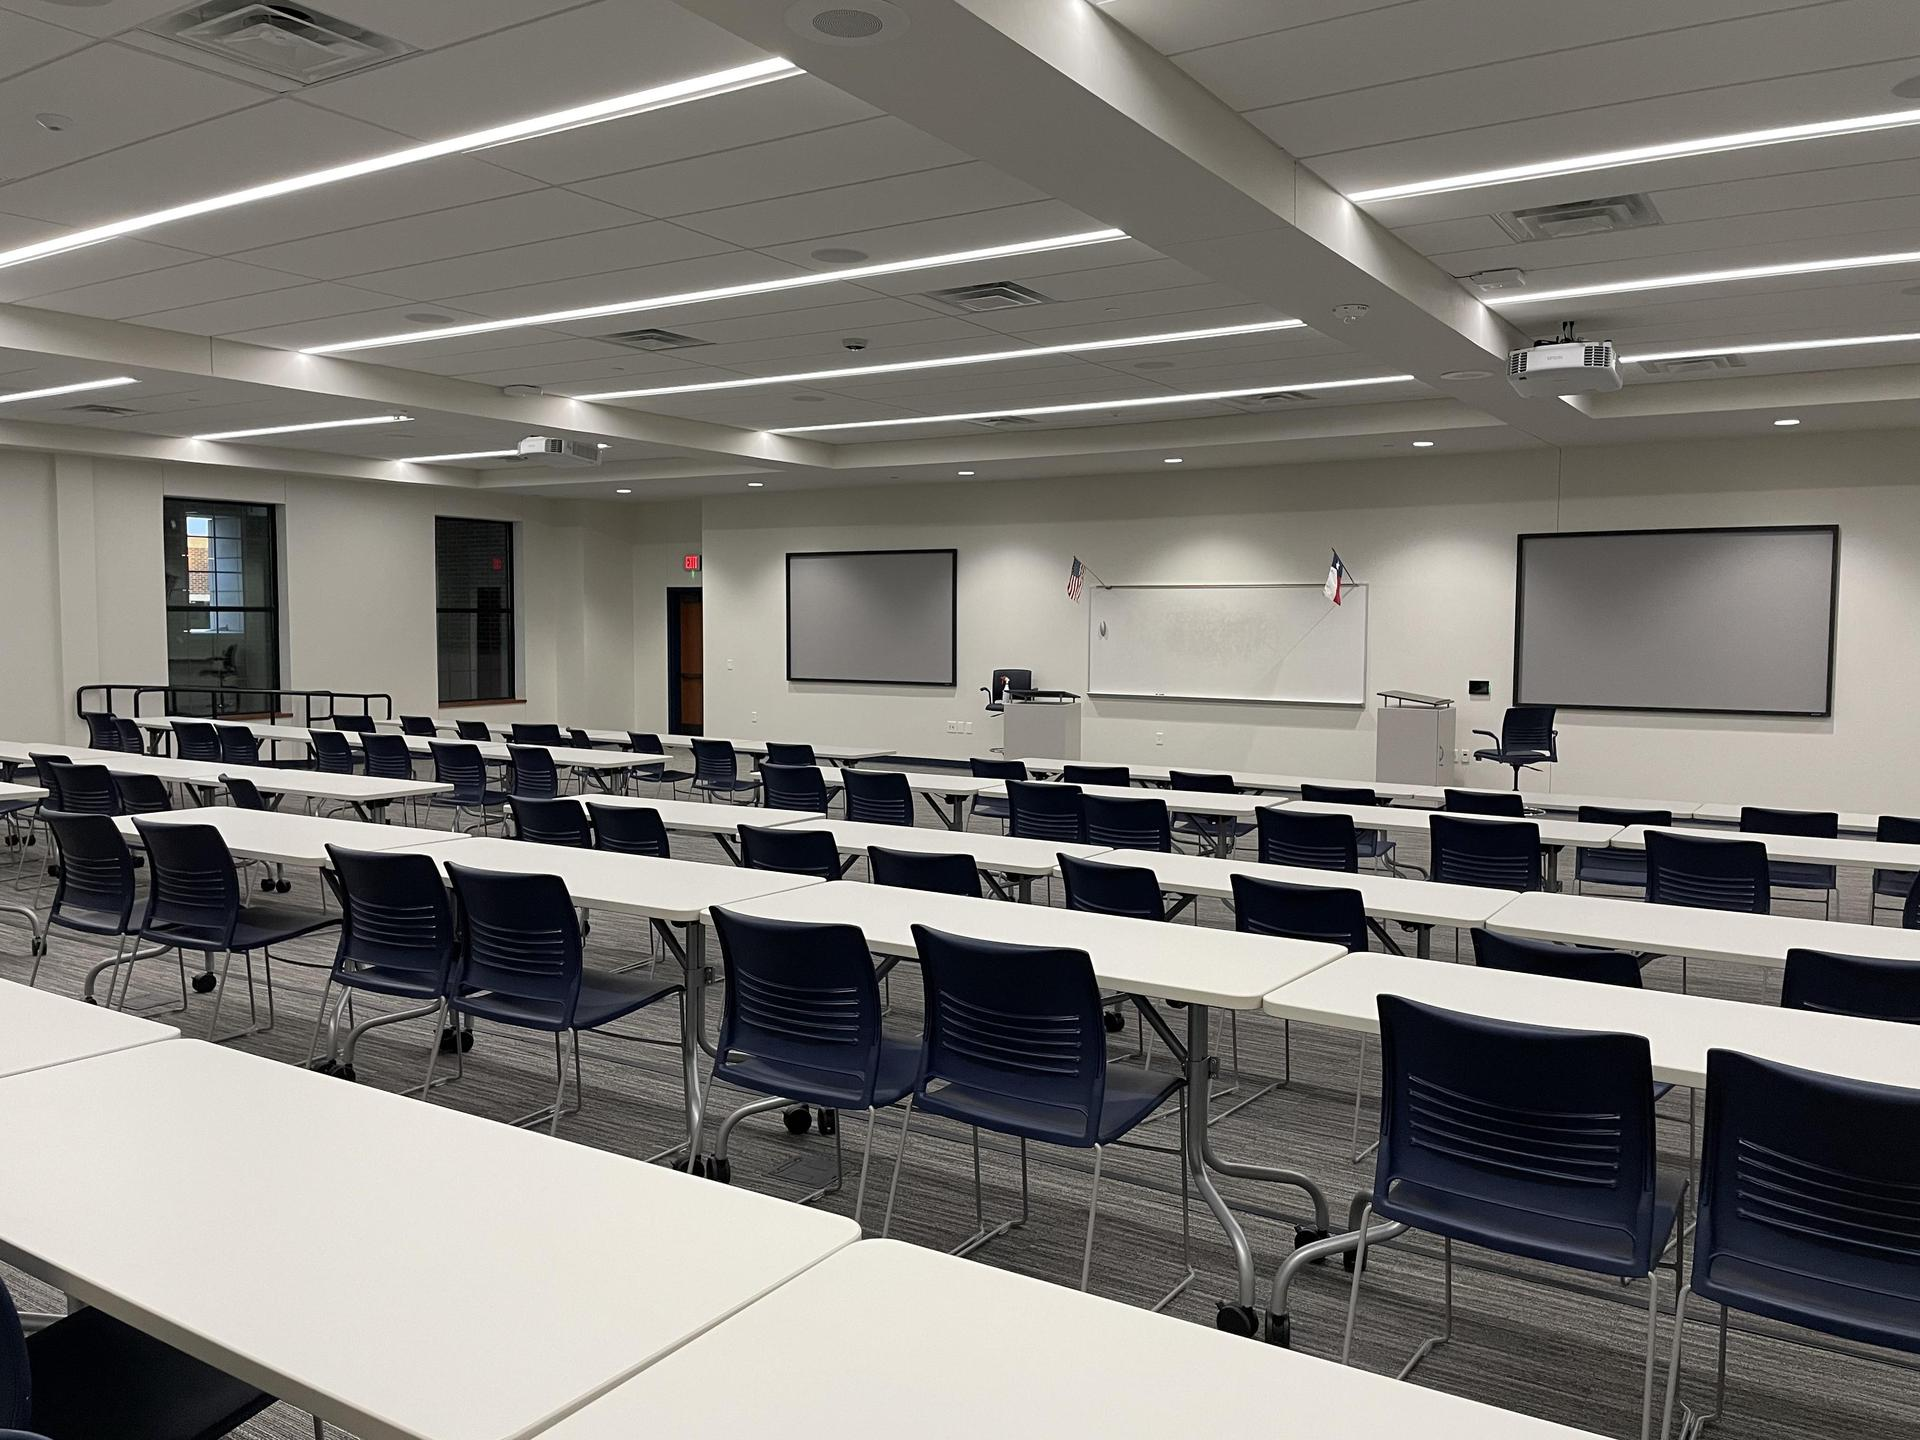 HPHS new lecture hall 2 012221